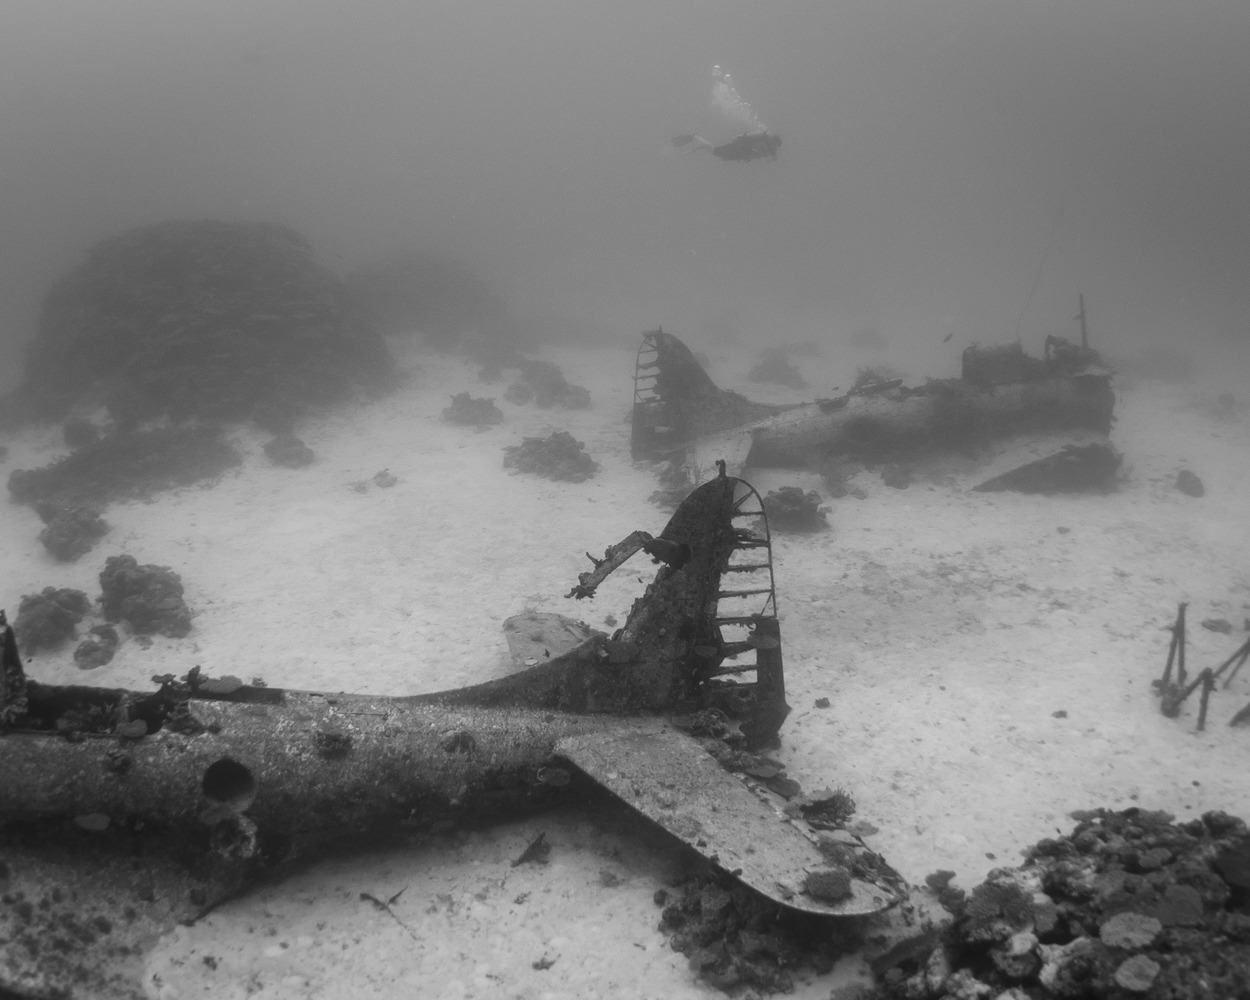 The Pacific Ocean Bed Is A Graveyard For World War II Planes dsc 4588